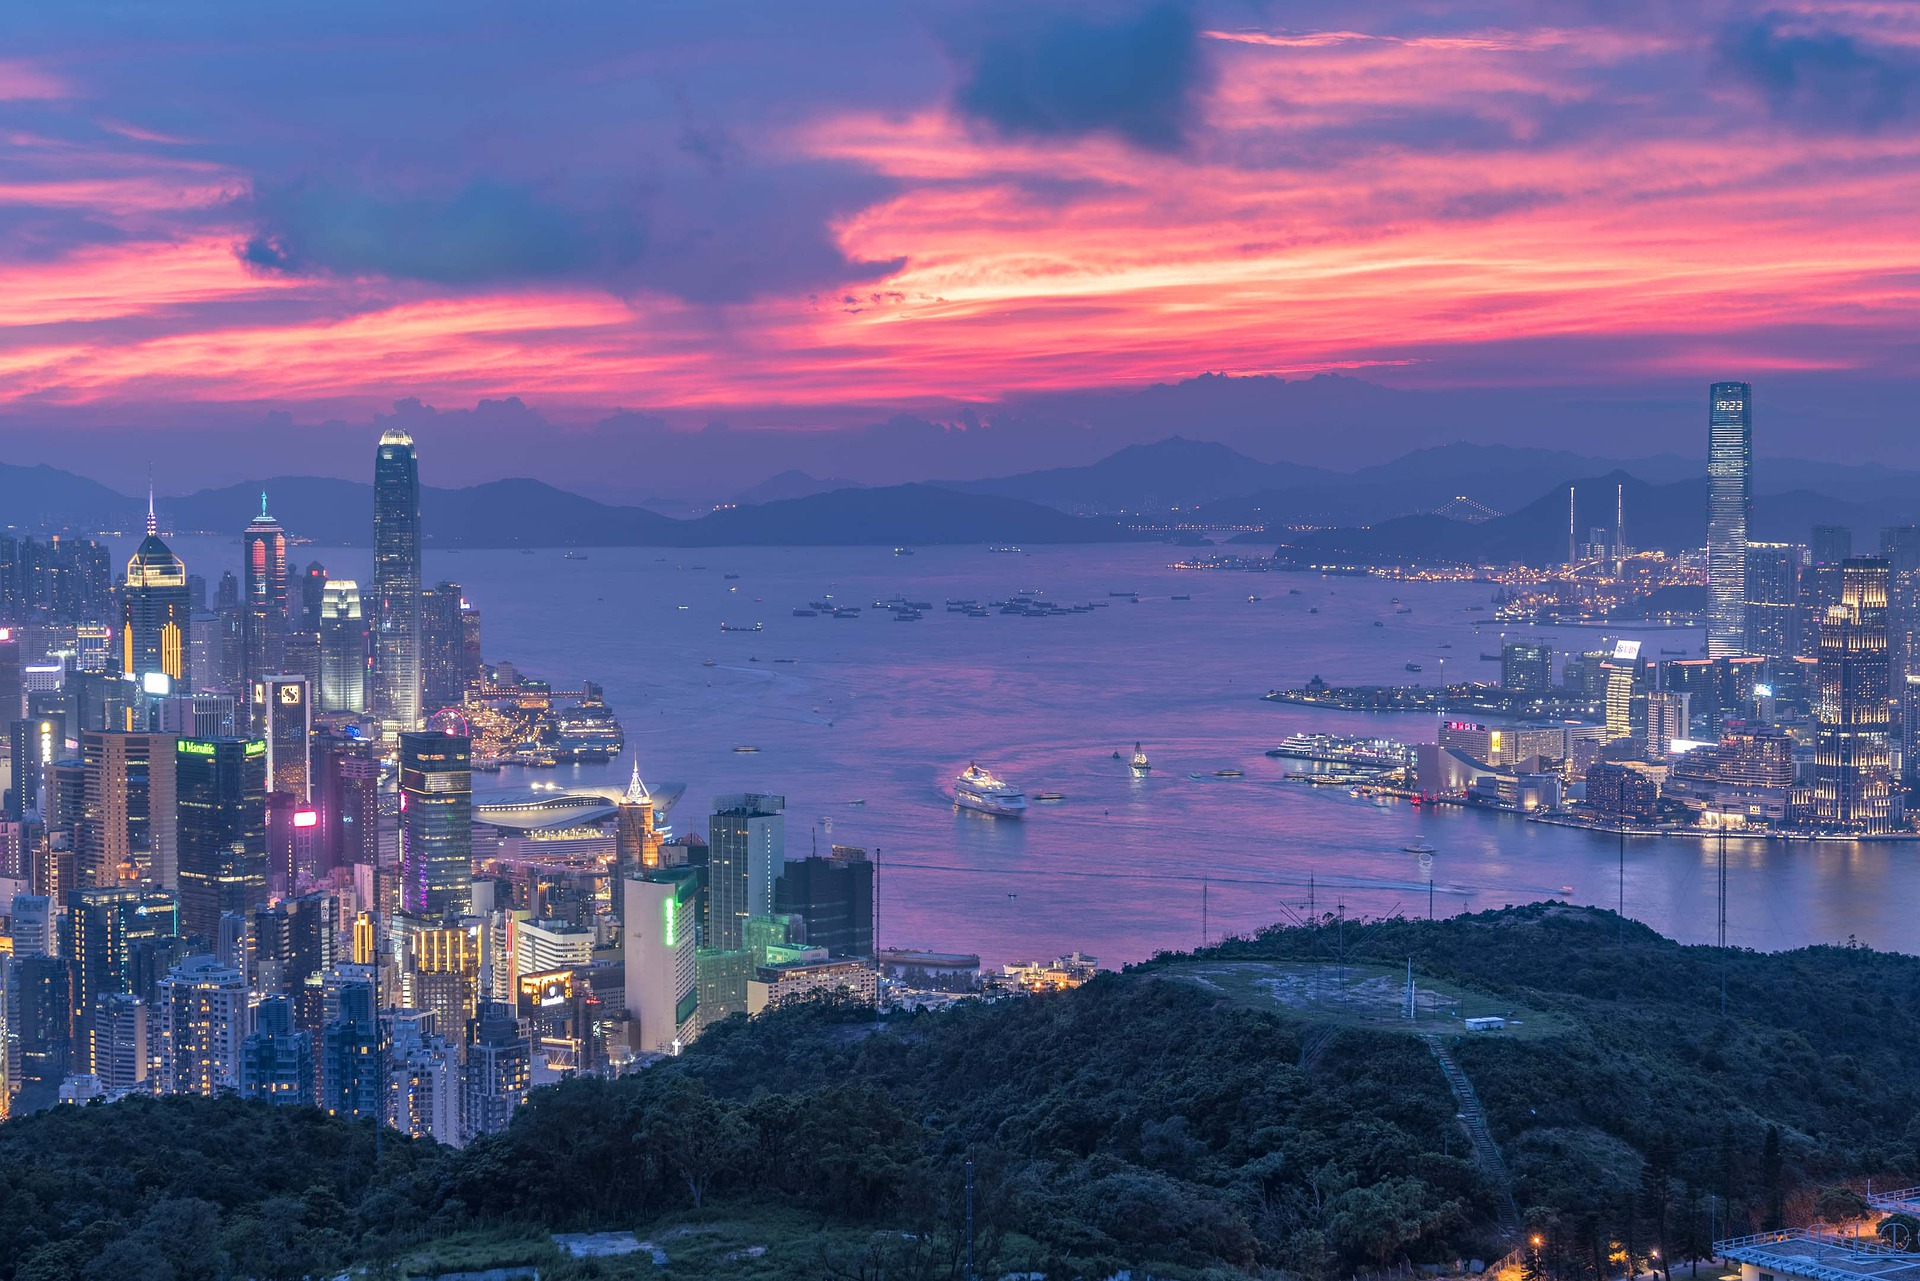 Victoria Harbour in Hong Kong - photo by Steven Yu under Pixabay License